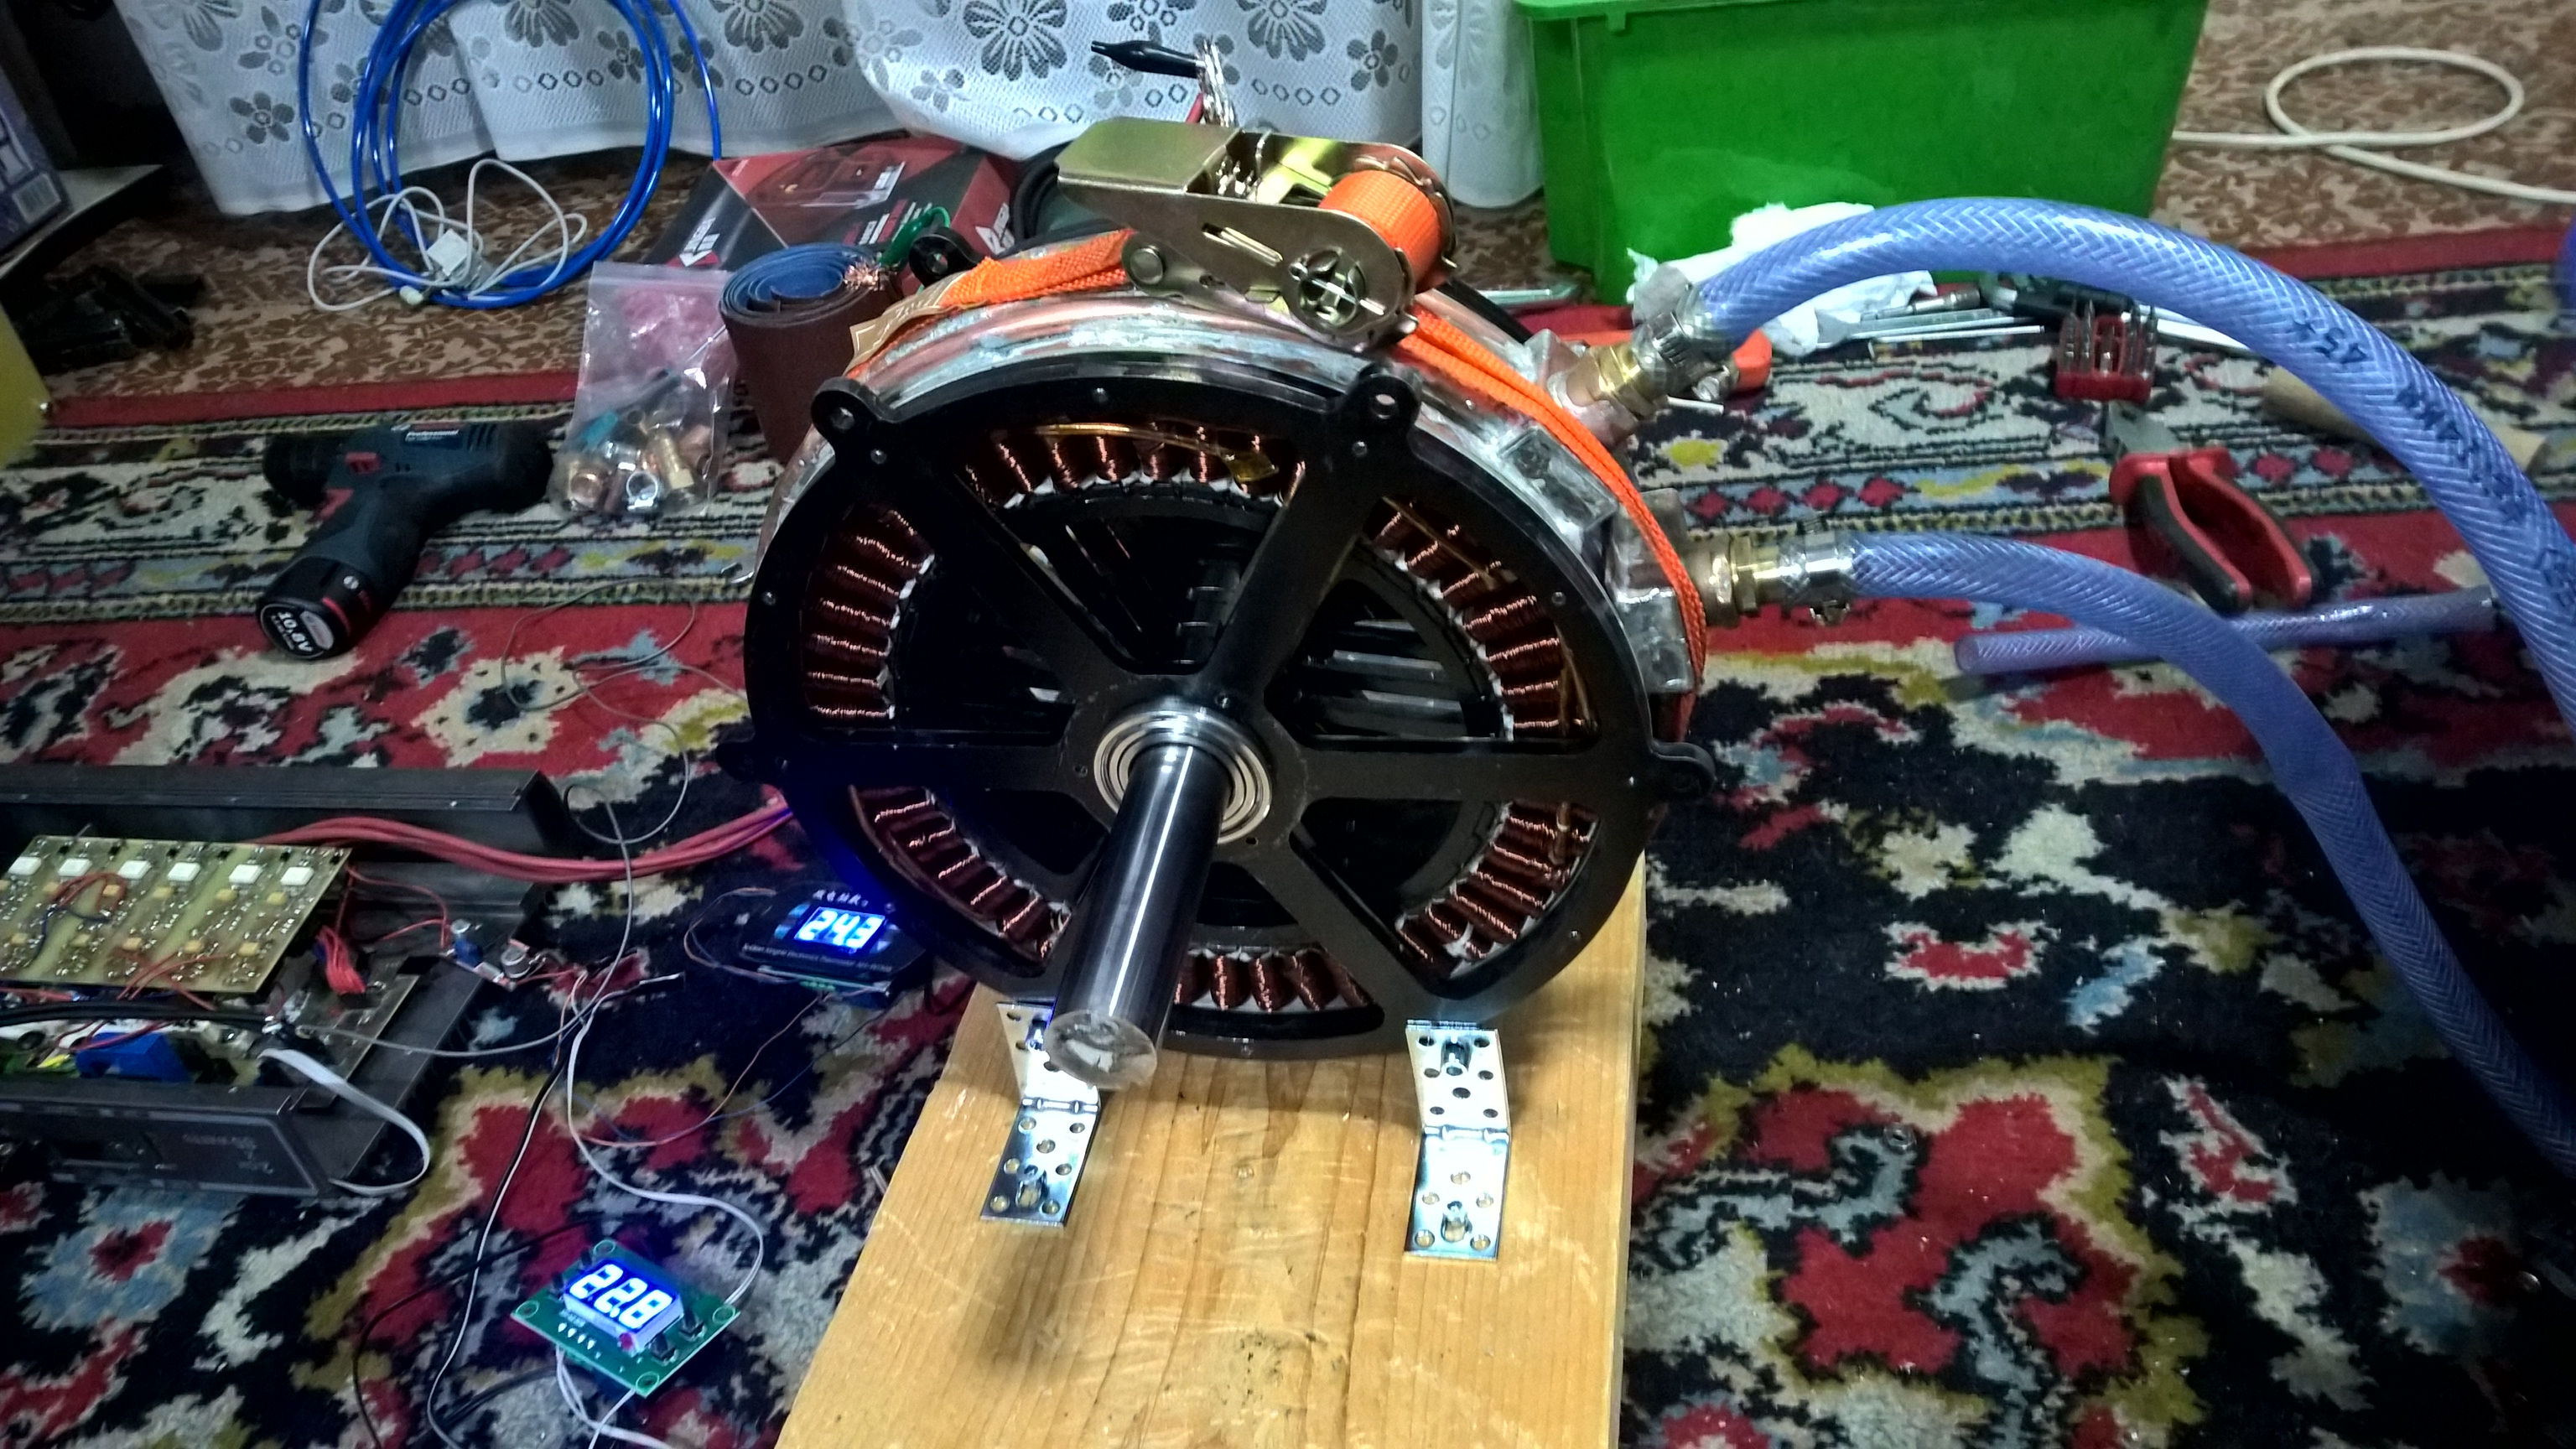 45kw Bushless Motor Design Brushless Motors 3phase Inverters Hi I Want To Make A Single Phase Ac Motor39s Rpm Controller Have Homemade